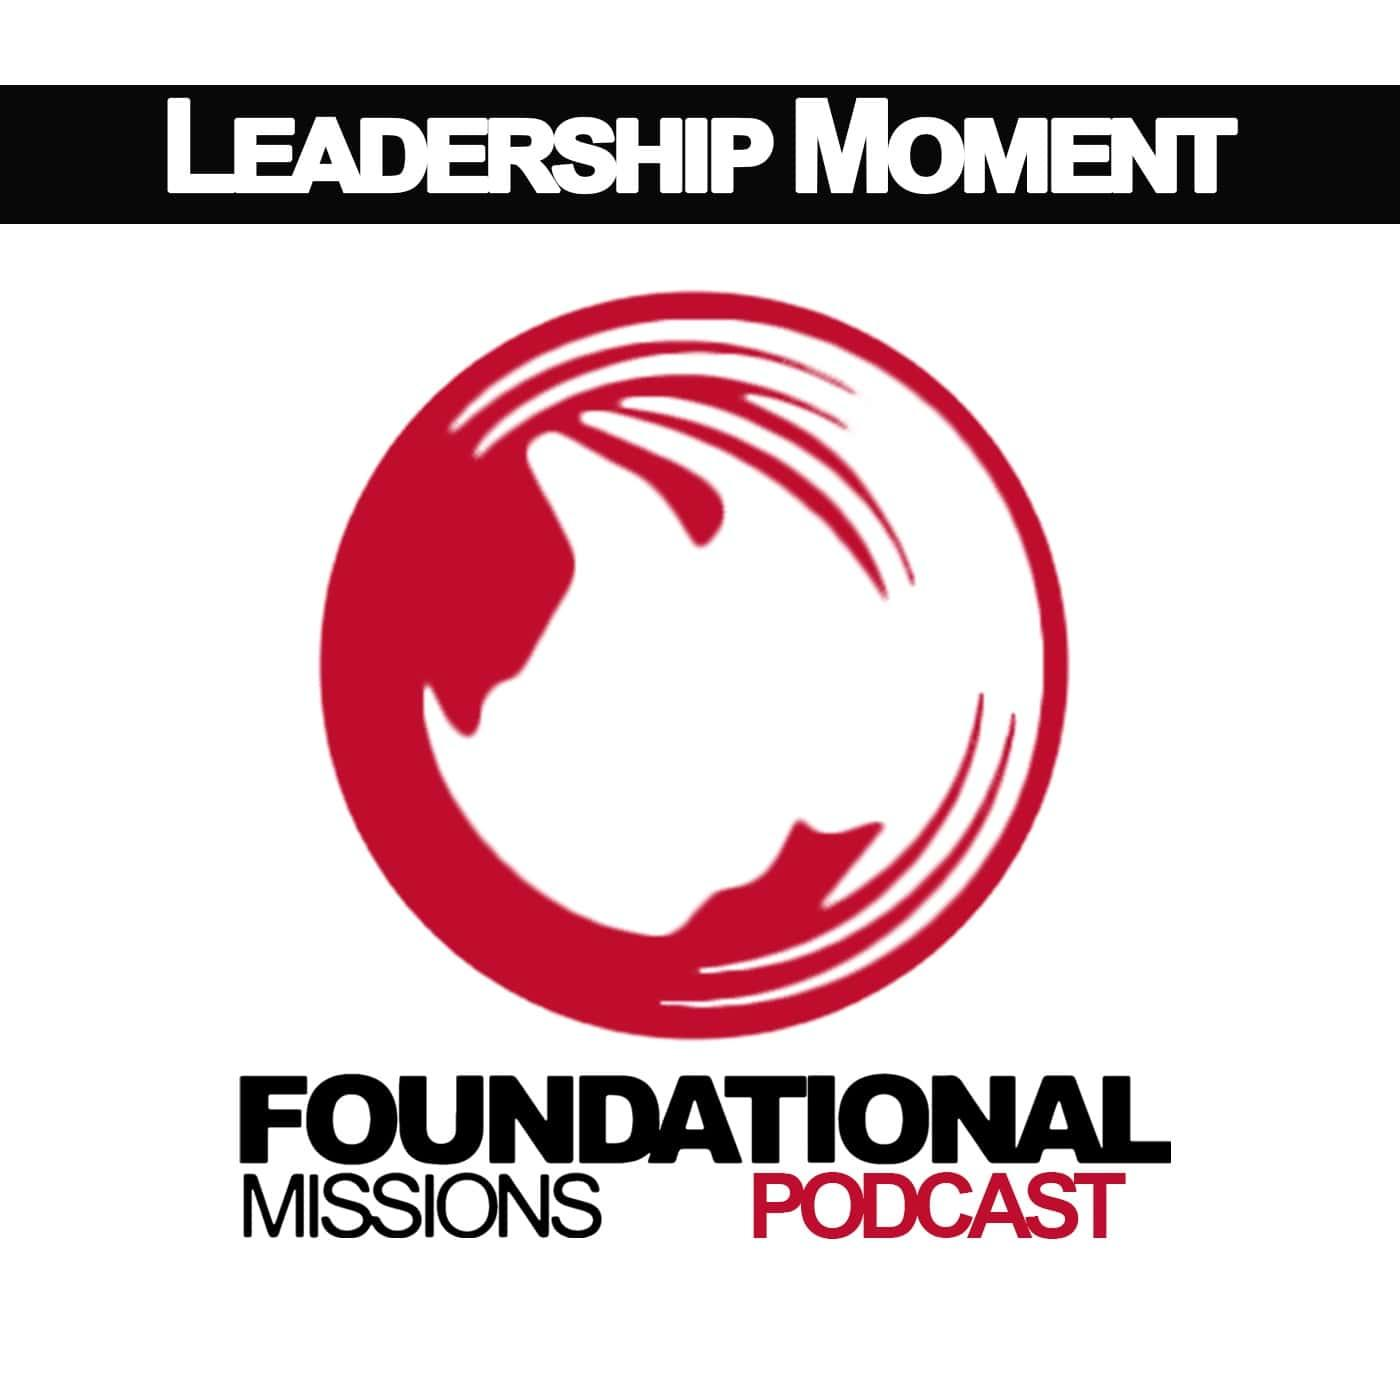 Artwork for On Location In Thailand - Caleb Lorensen On Great Leadership Influences - Foundational Missions Leadership Moment  # 69